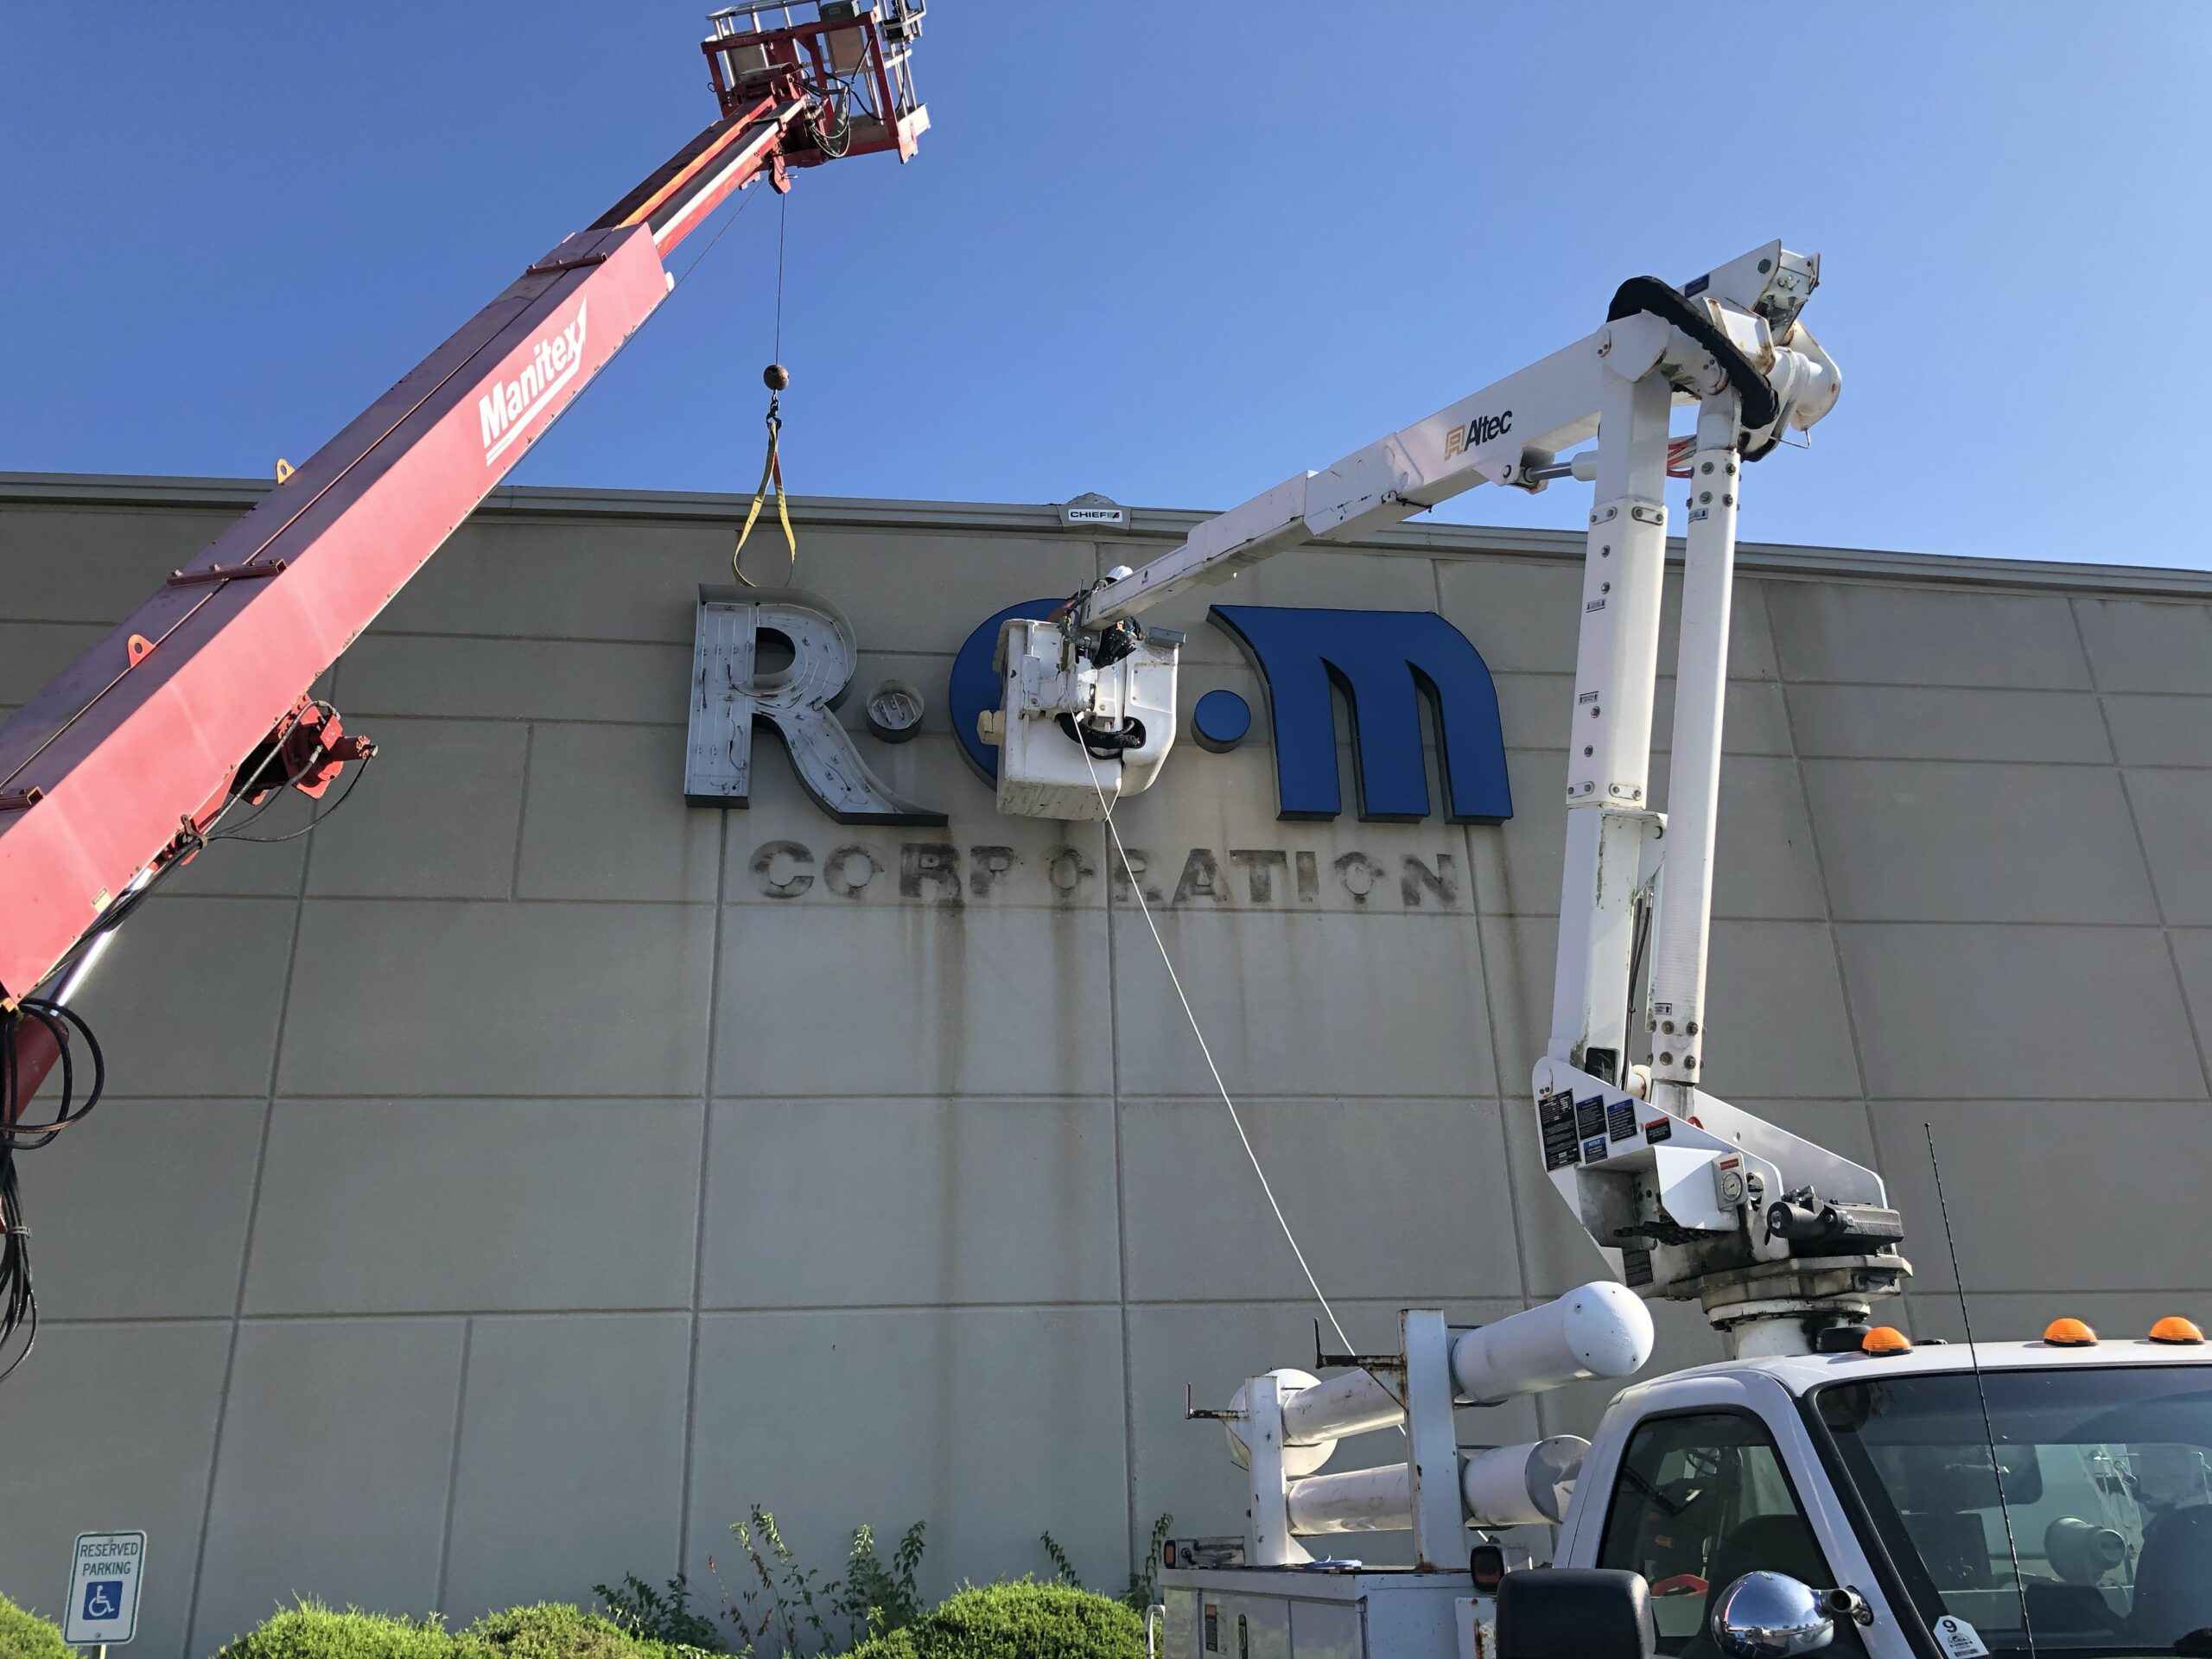 Removal of sign, sign removal and disposal, exterior sign